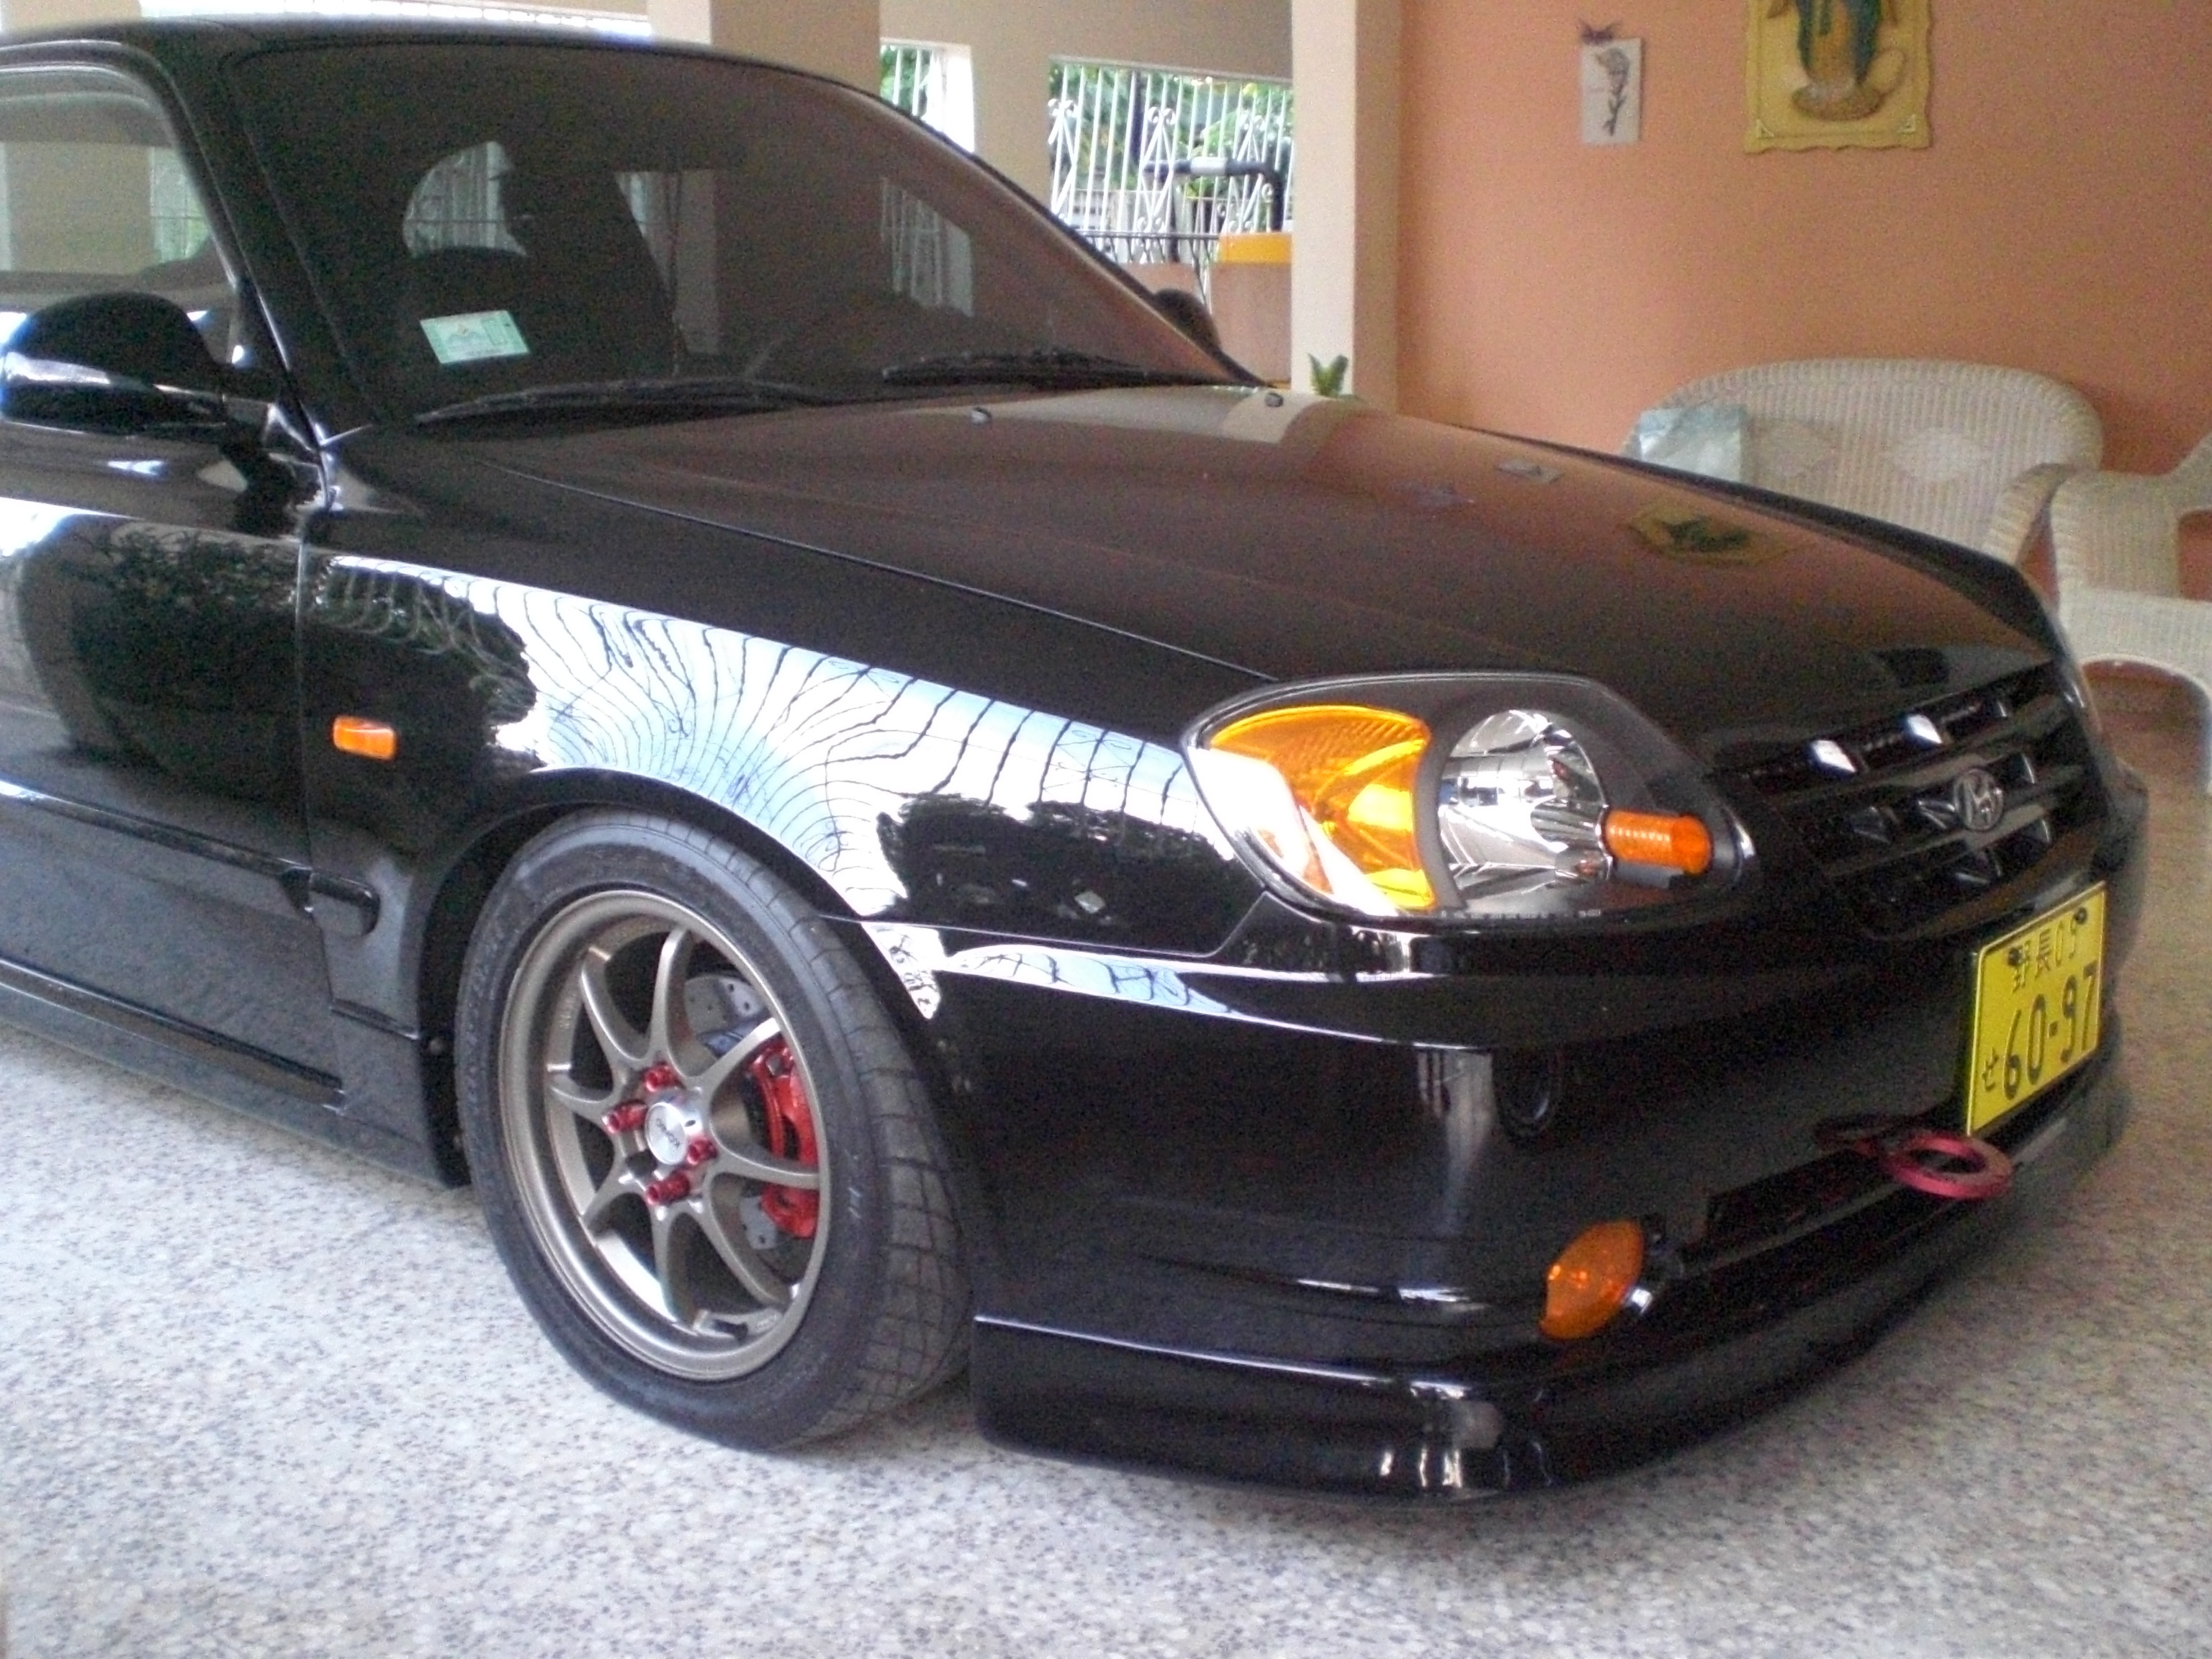 Jose Verna 2004 Hyundai Accentgt Hatchback Coupe 2d Specs Photos 2008 Santa Fe Wiring Harness Accent